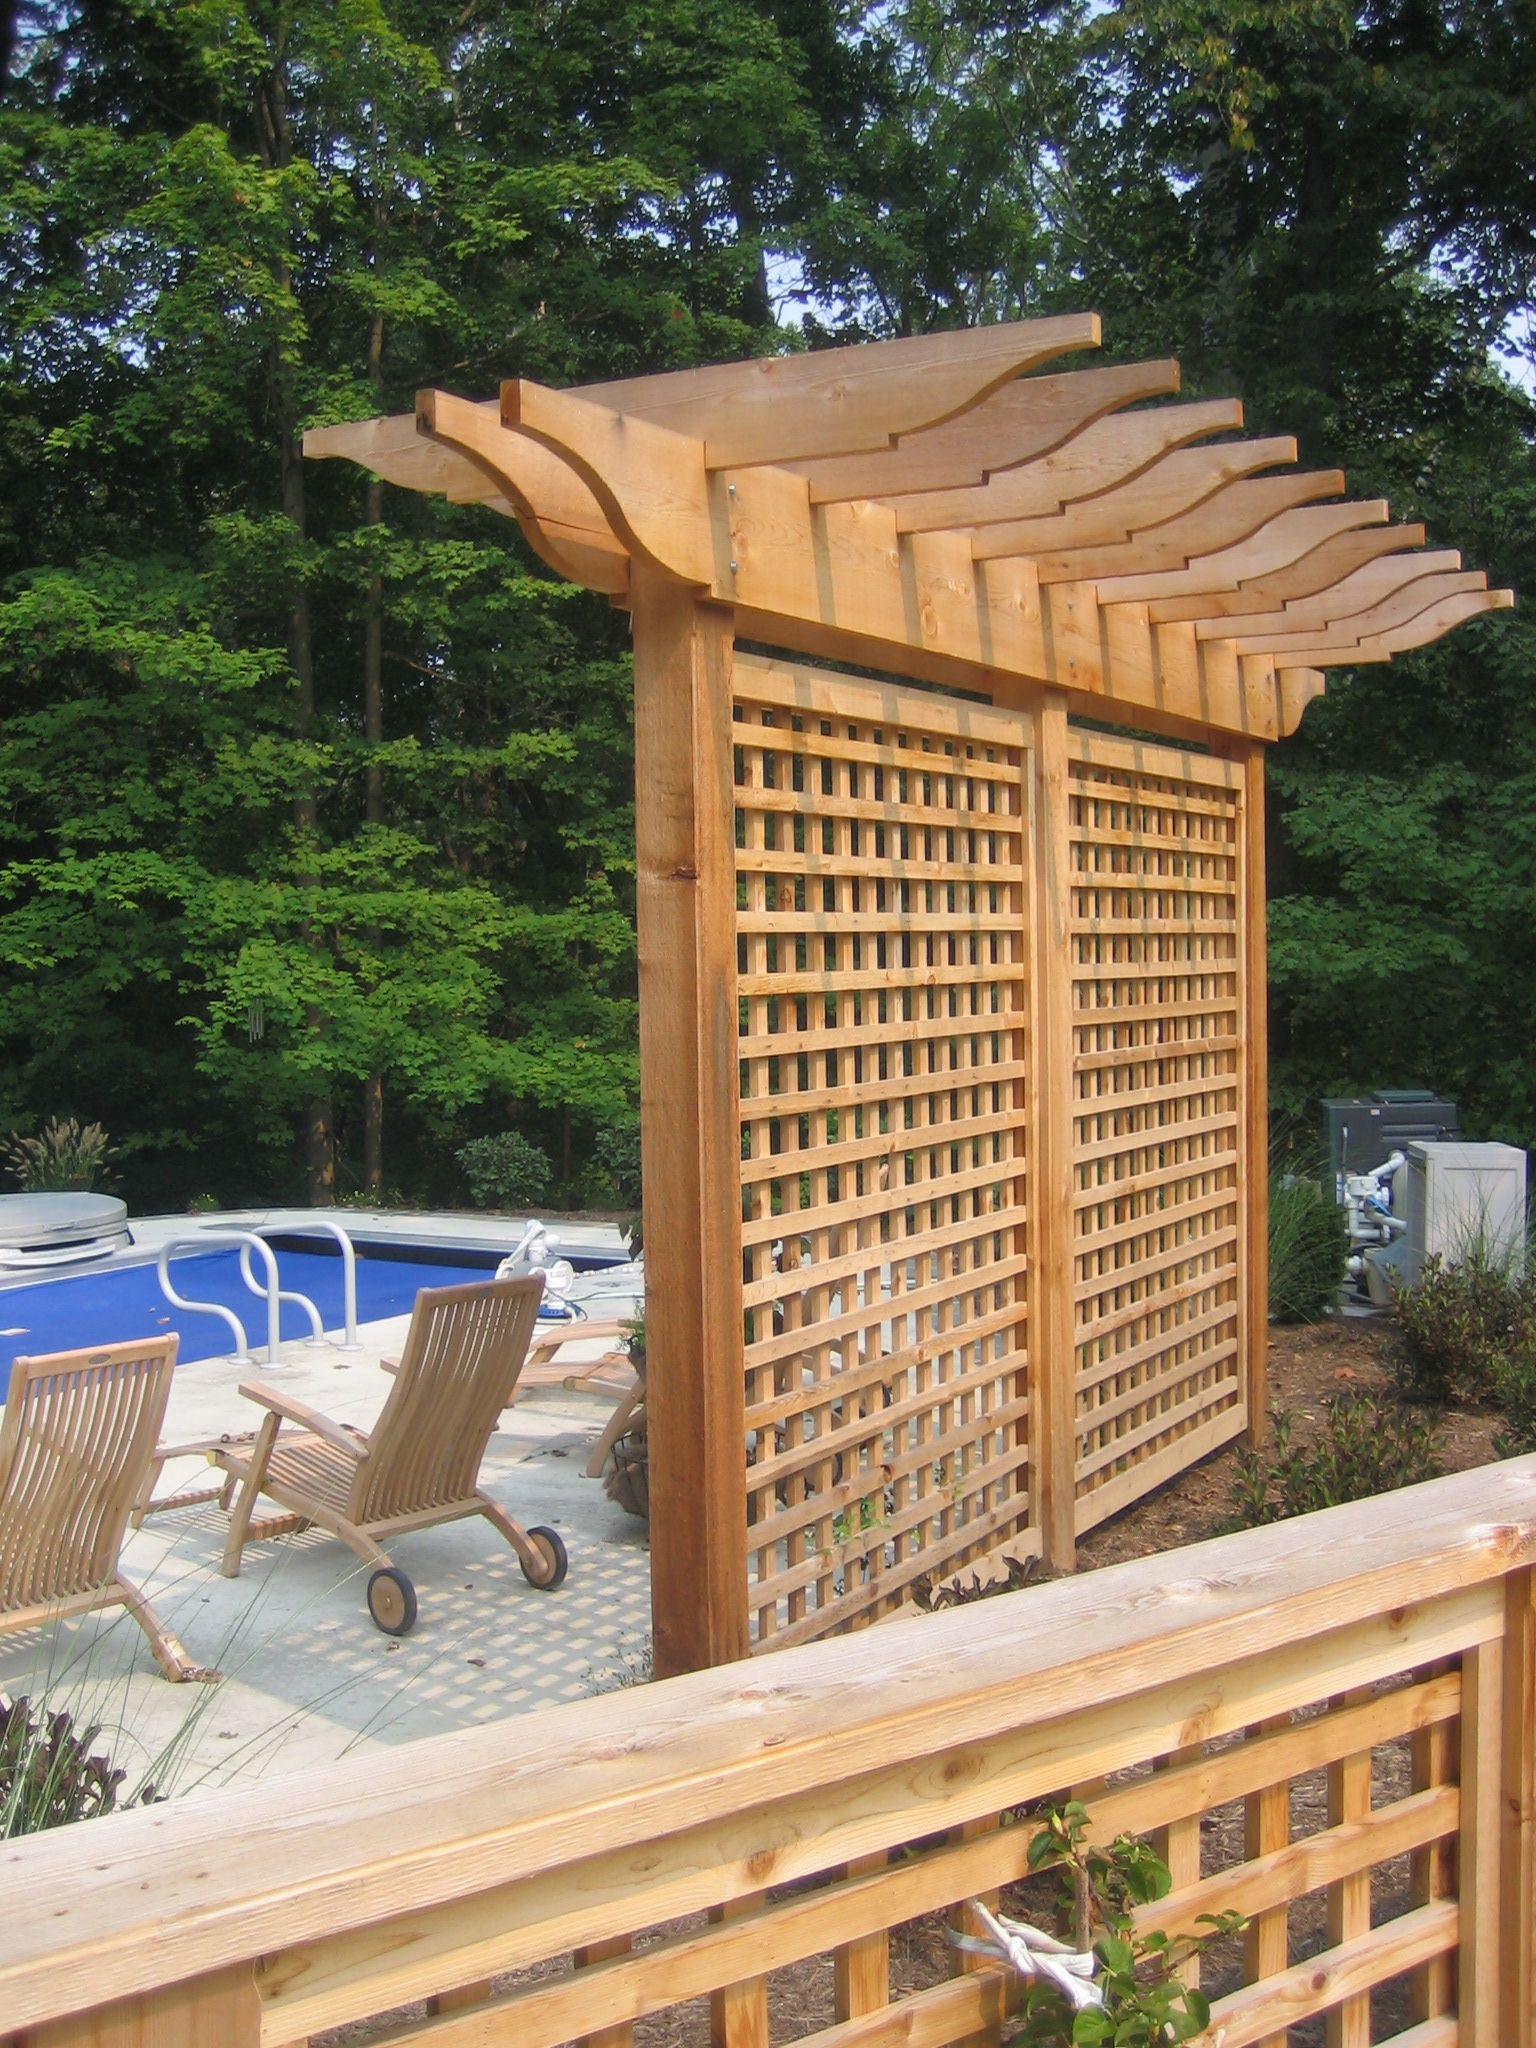 Charmant Sublime Swimming Pool Deck With Wooden Chairs Also Fence For Backyard Decor